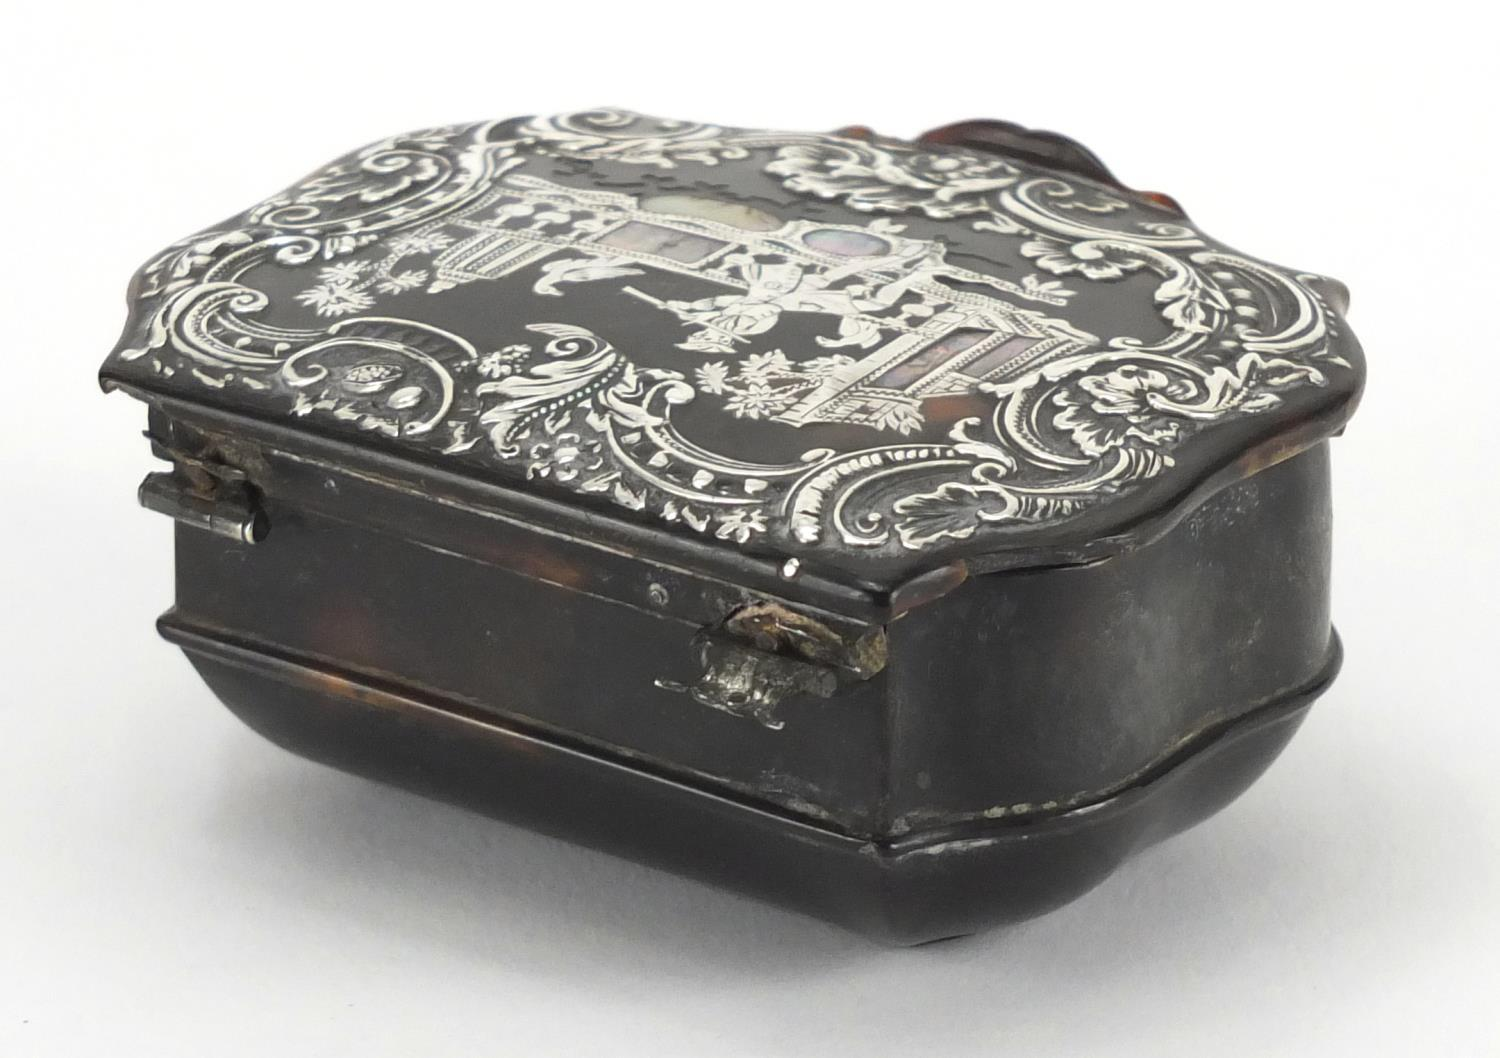 Lot 17 - Late 18th/Early 19th century tortoiseshell snuff box, the hinged lid inlaid with silver and mother